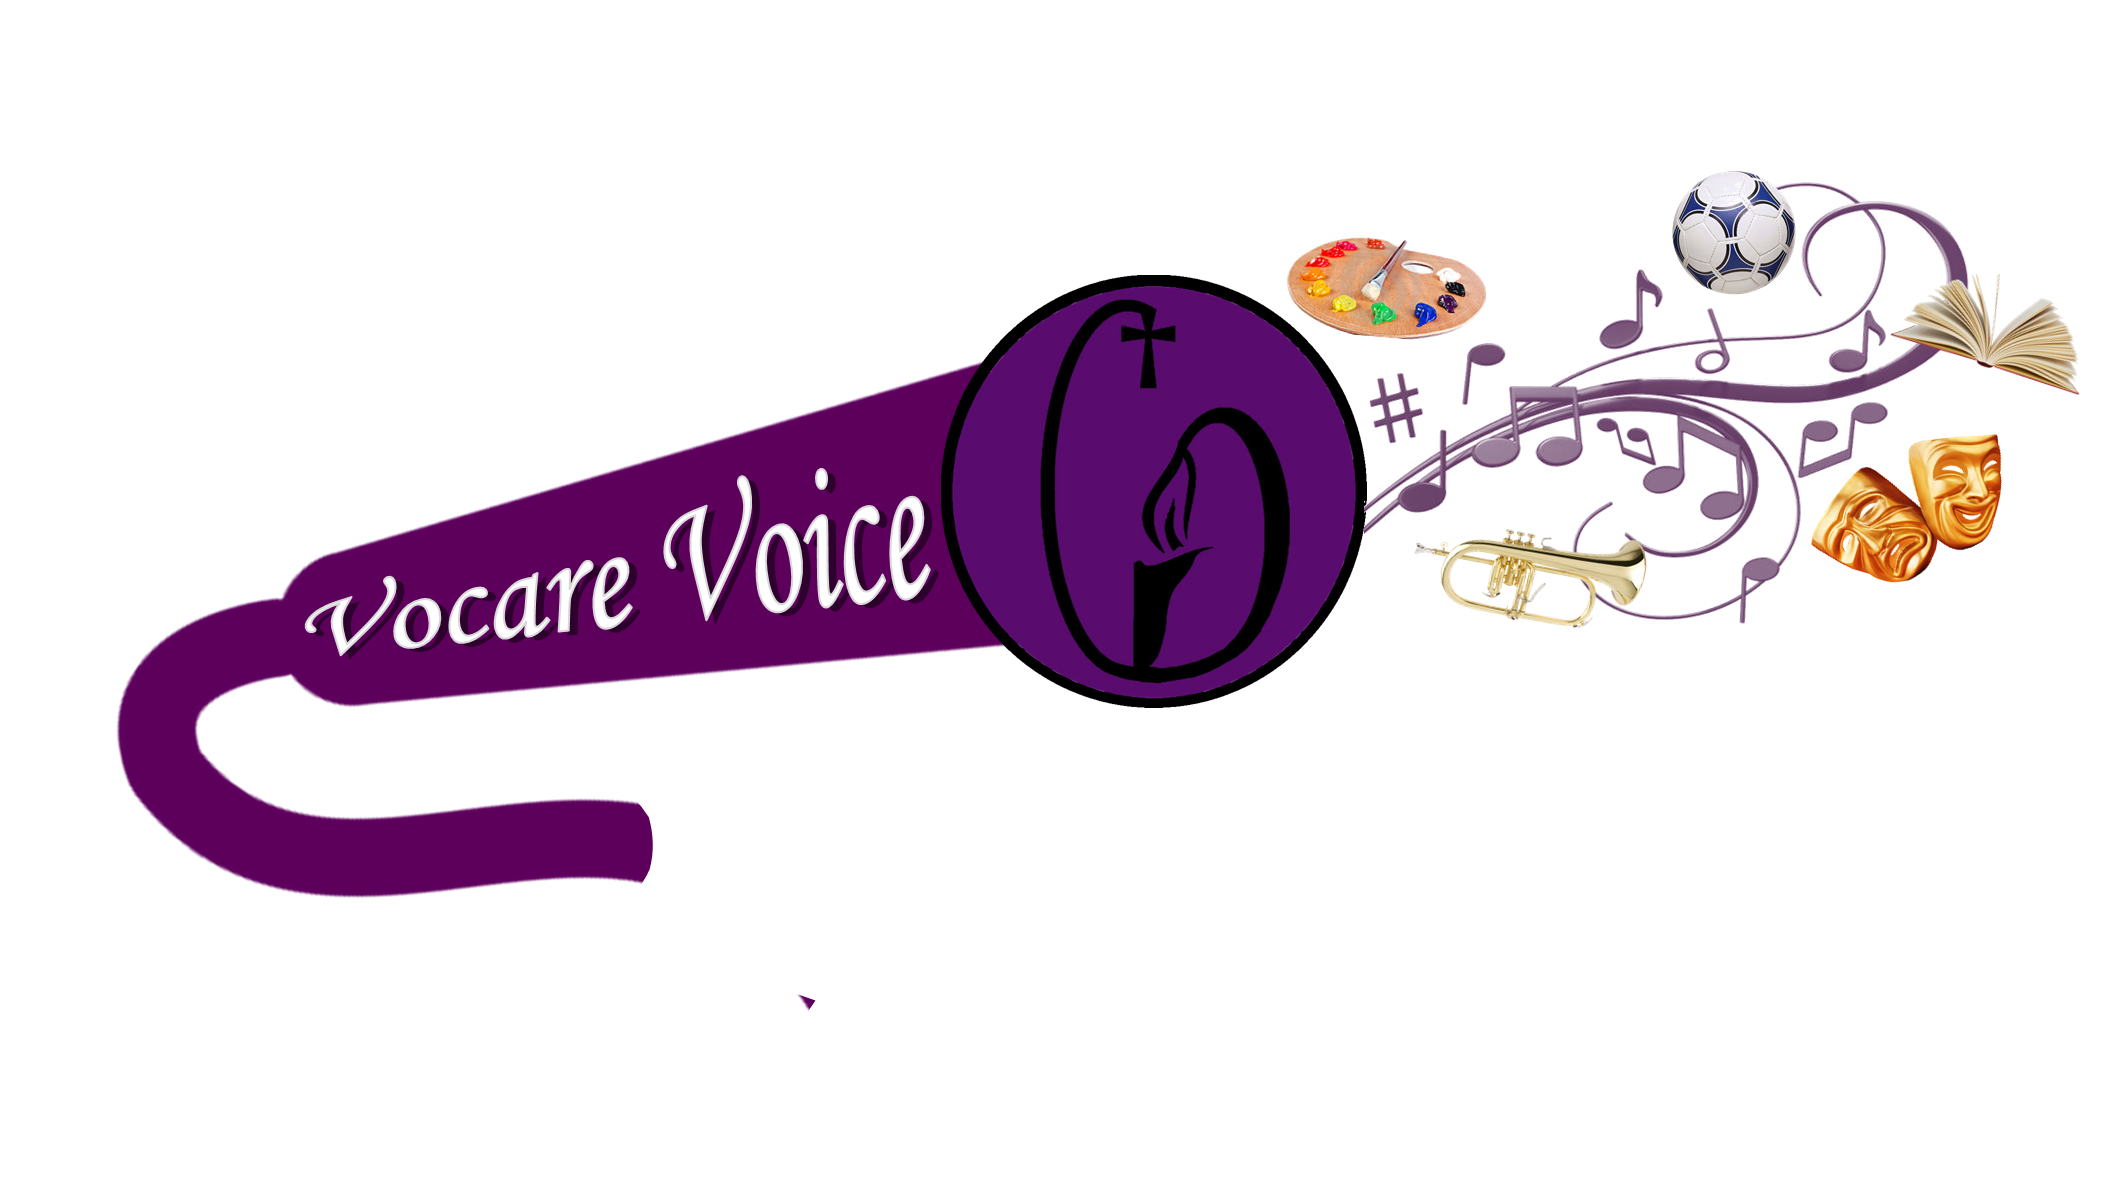 Vocare voice logo png. Competition clipart inter house